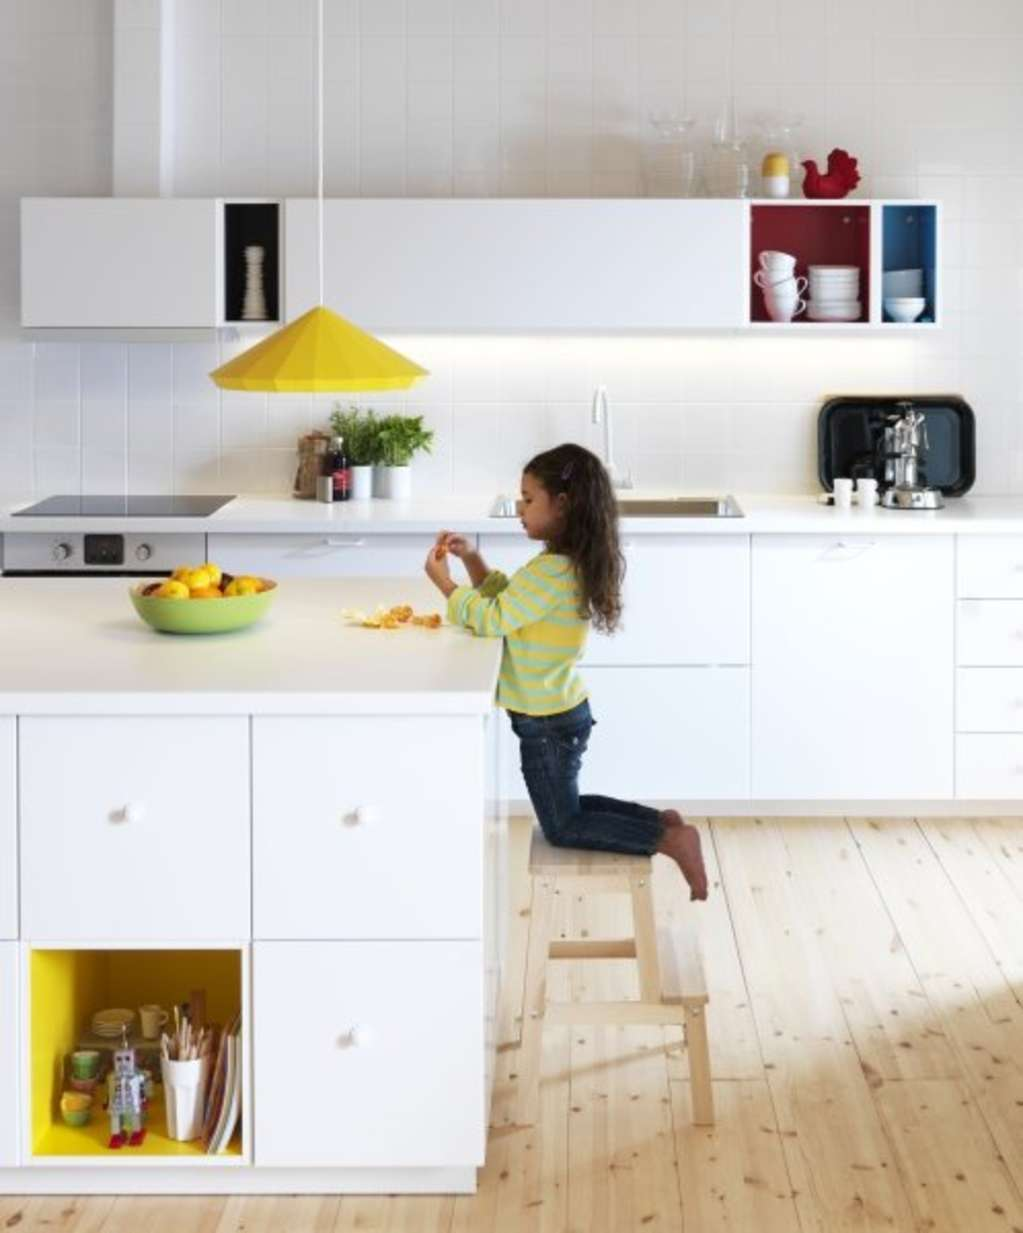 Ikea Kitchen Design Software Free: The Inside Scoop On IKEA's New Kitchen Cabinet System